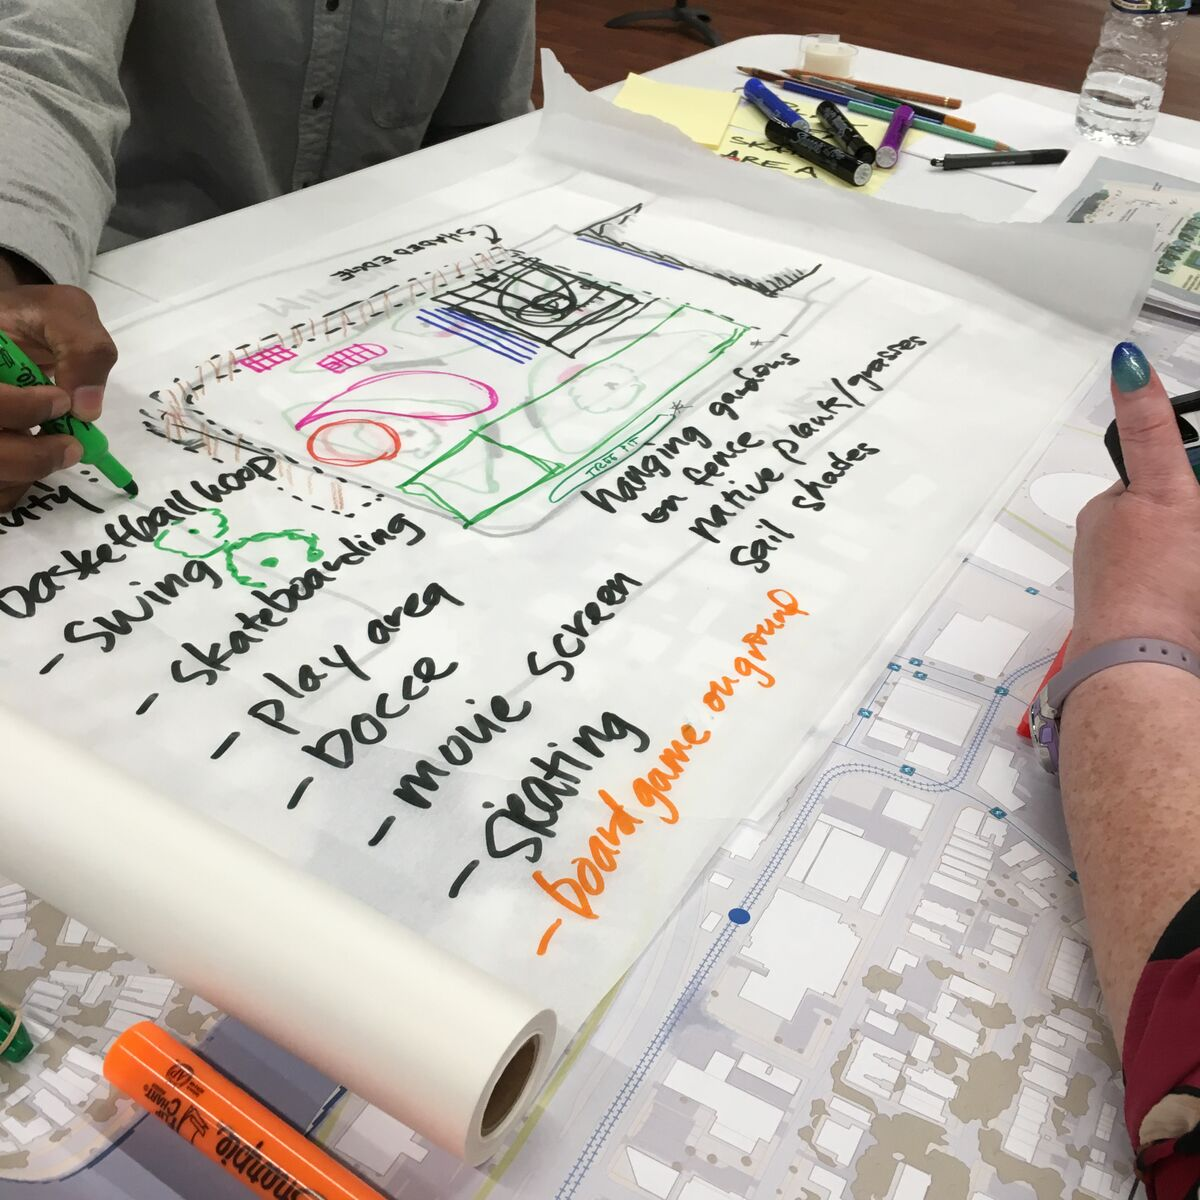 UPDATE: NEON Community Open Space Charrette